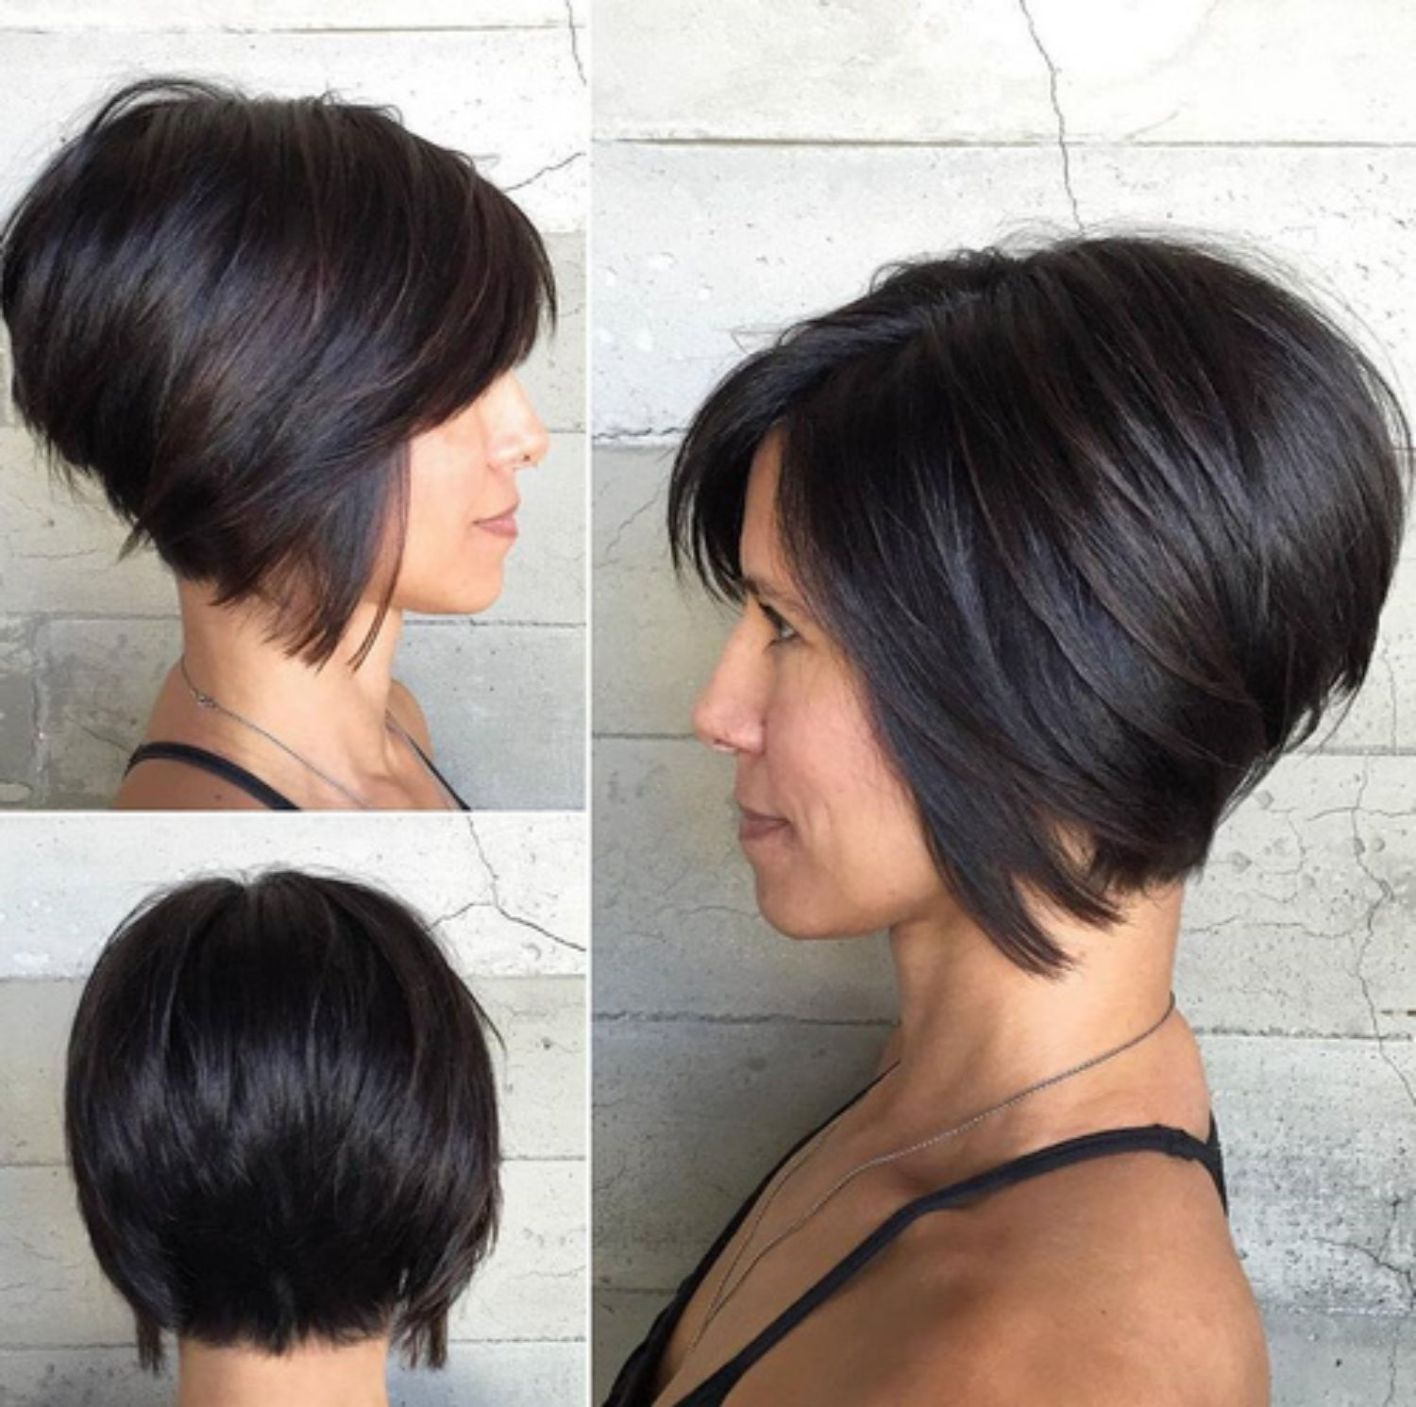 10 Classy Short Haircuts and Hairstyles for Thick Hair  Short